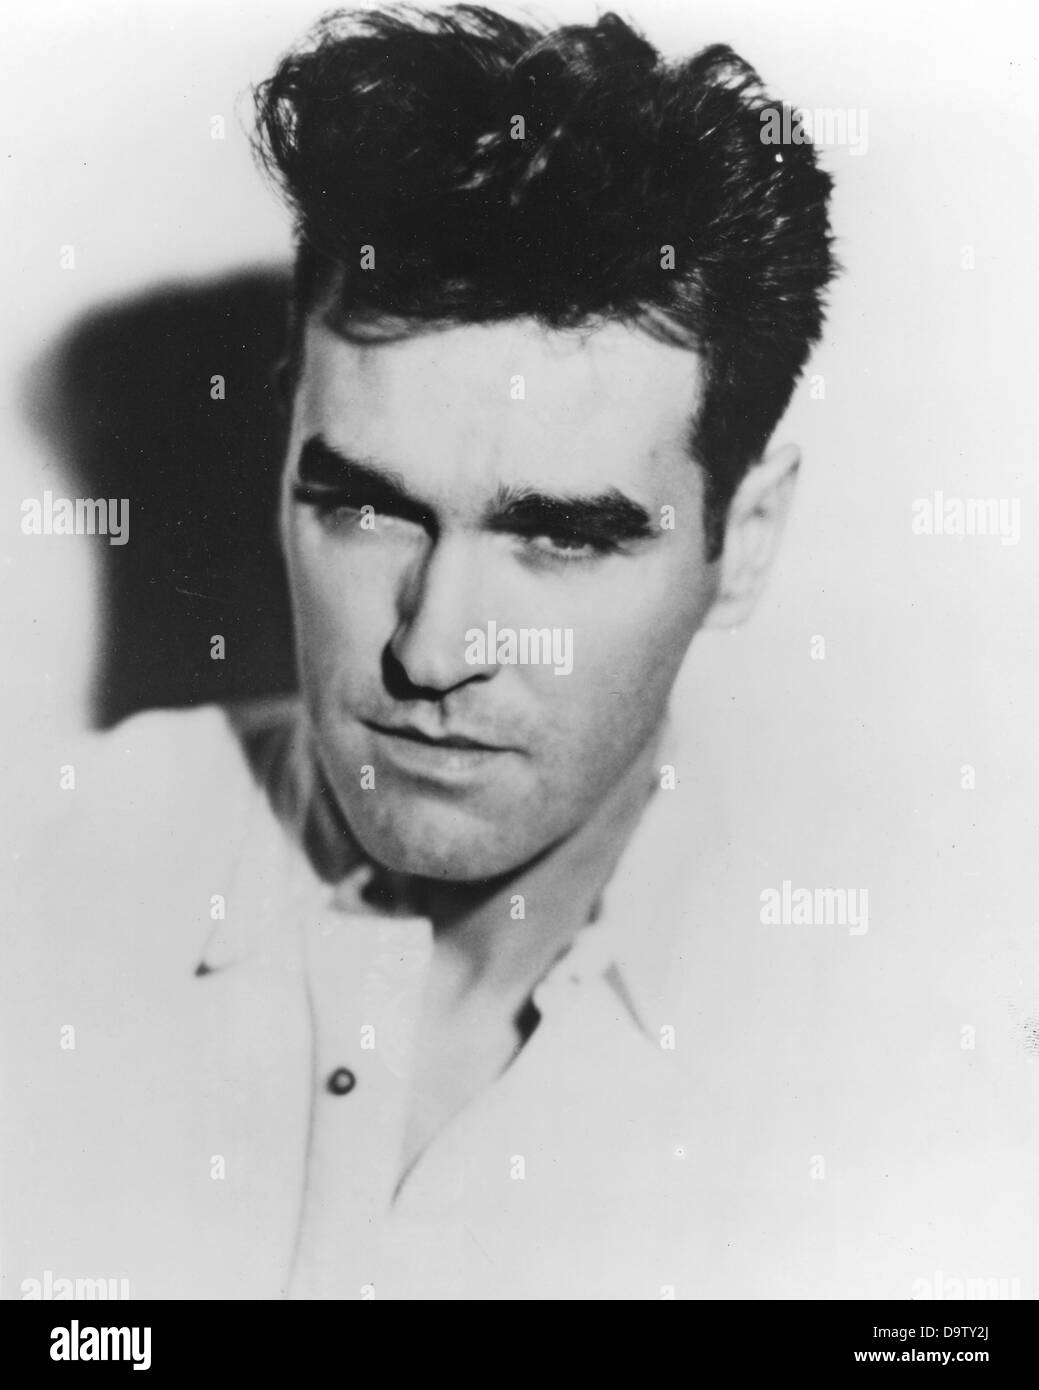 THE SMITHS UK rock group promotional photo of Morrissey about 1985 - Stock Image